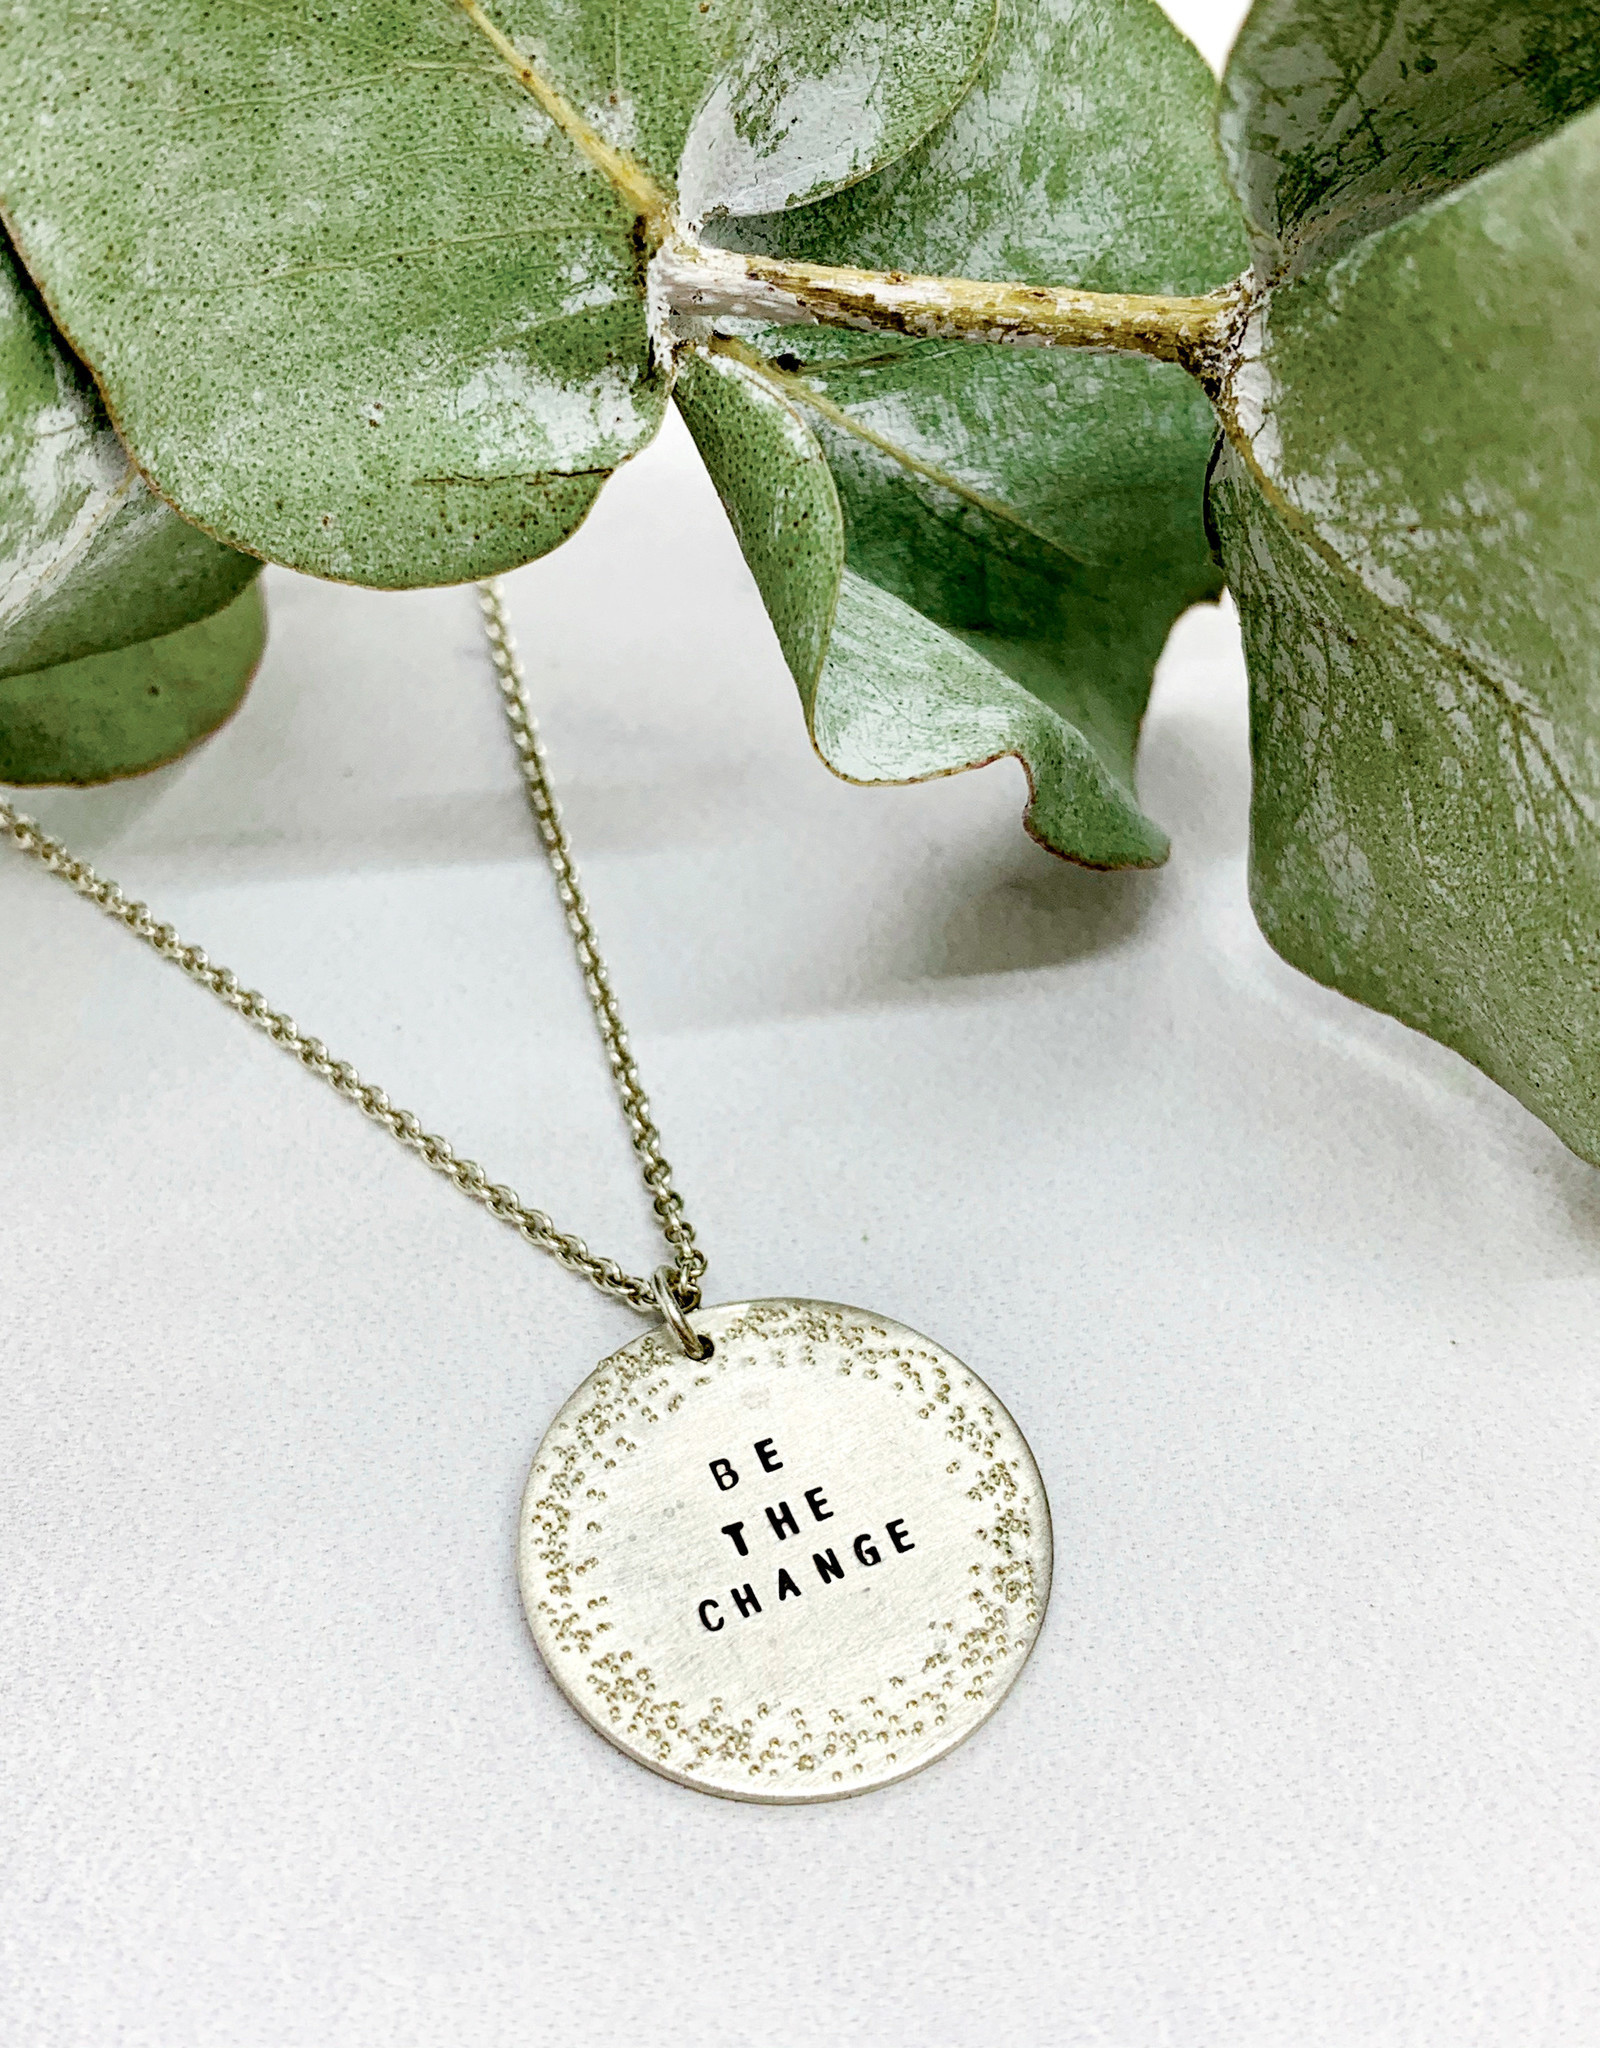 """Handmade Silver """"BE THE CHANGE"""" Diamond Dusted Small Coin Necklace, 16/18"""""""